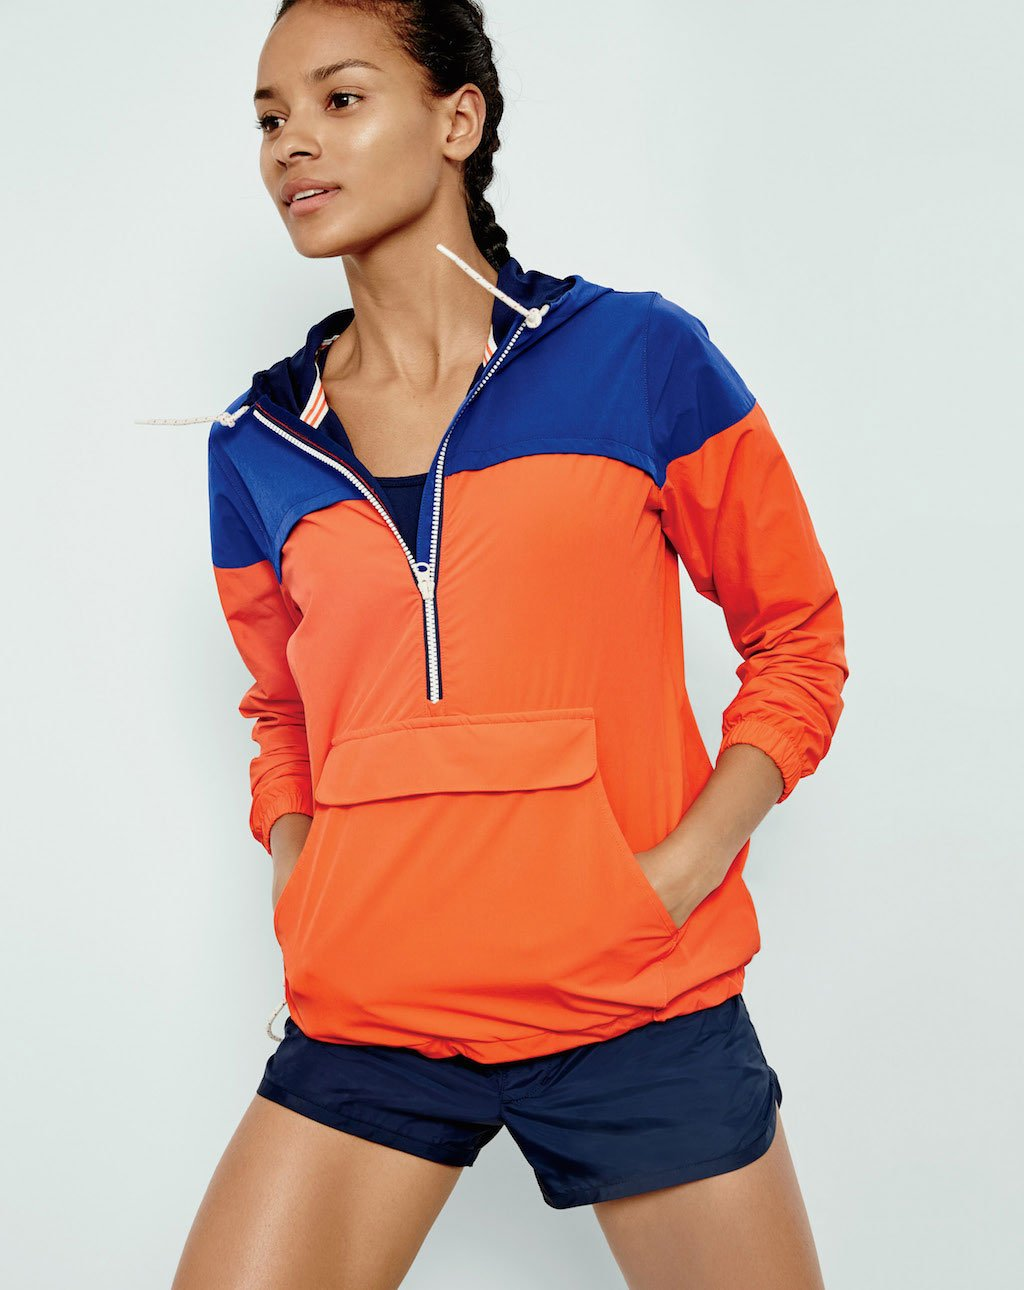 2beabad22ab06 J.Crew Just Launched Their First Activewear Line with New Balance ...